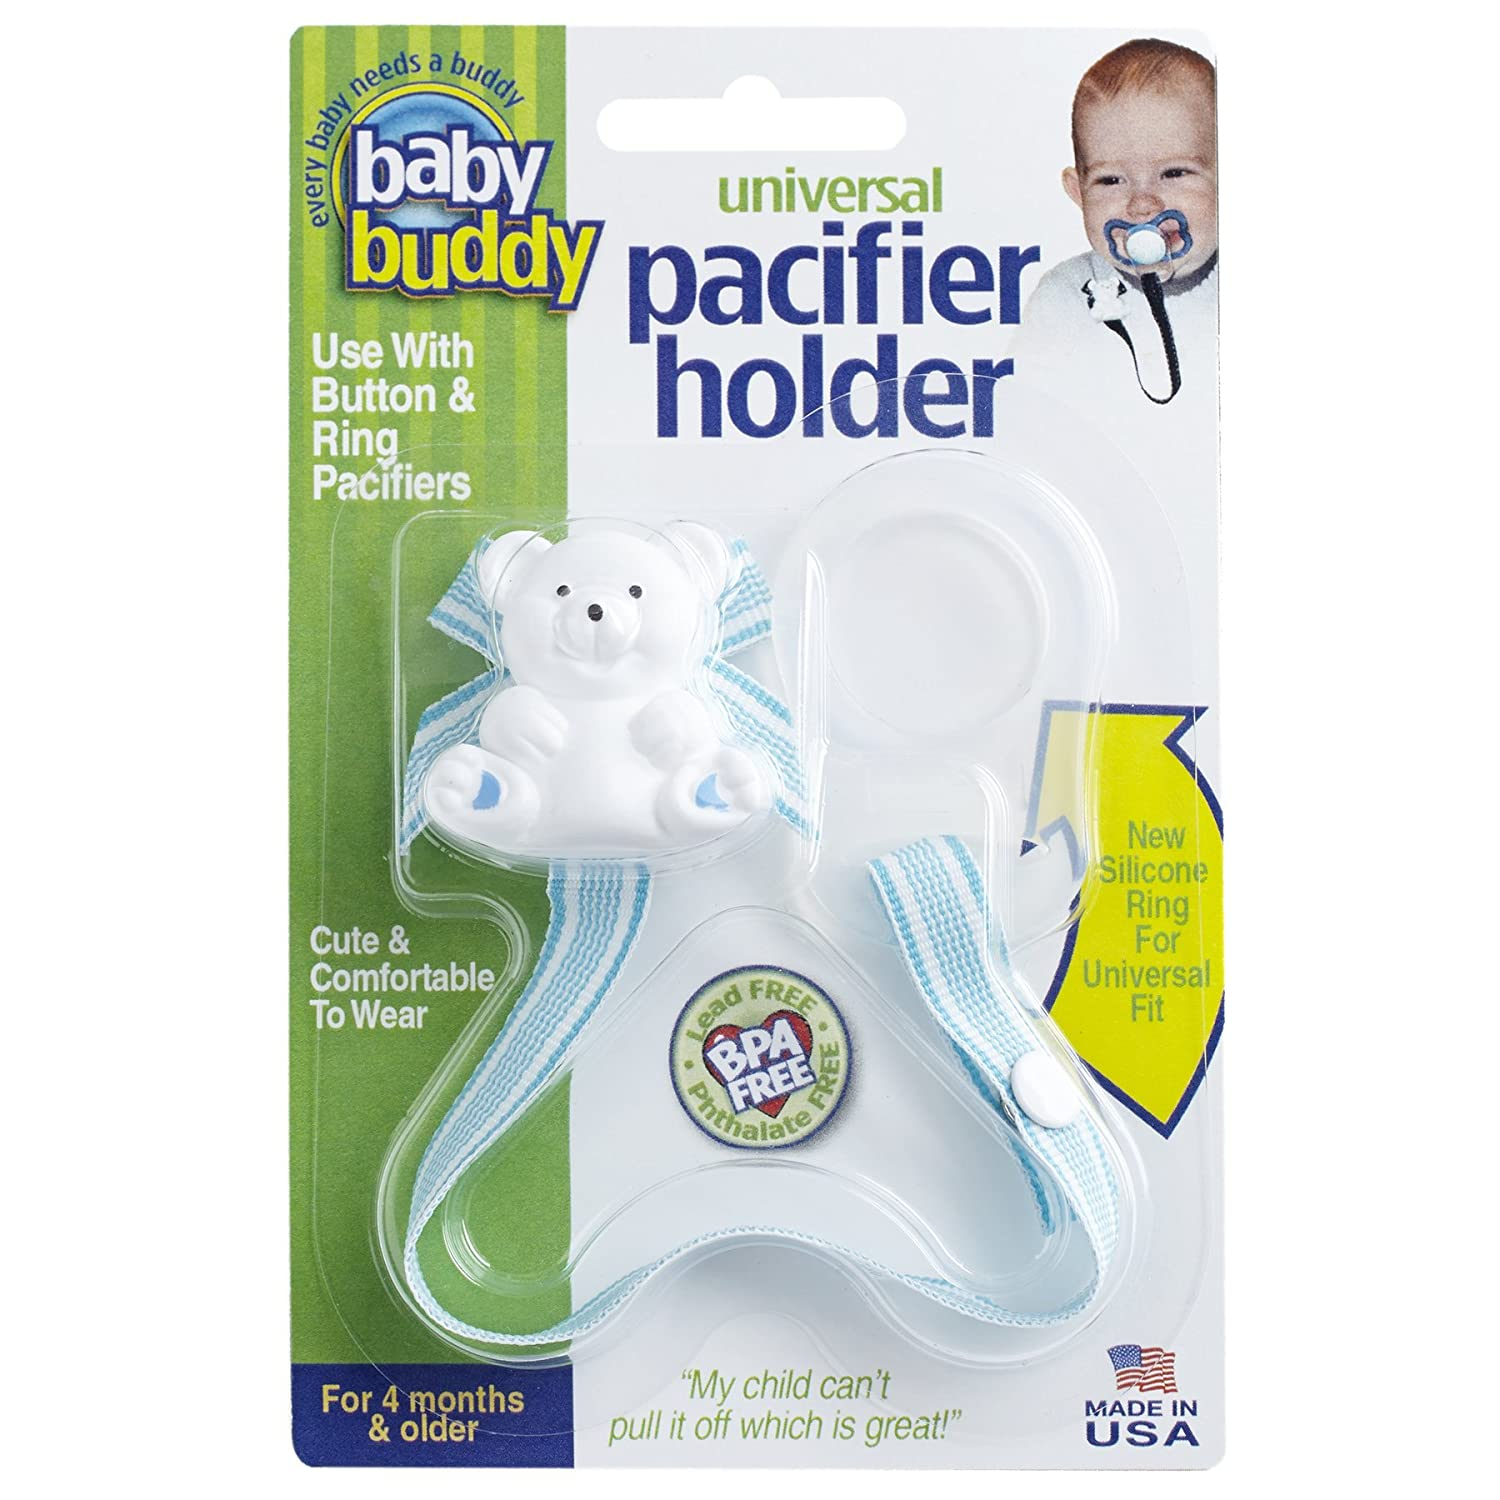 Amazon.com : Baby Buddy Universal Pacifier Holder Clip - Snaps to Paci or Attach with Universal-Fit Silicone Ring - Pacifier Clip for Babies 4+ ...